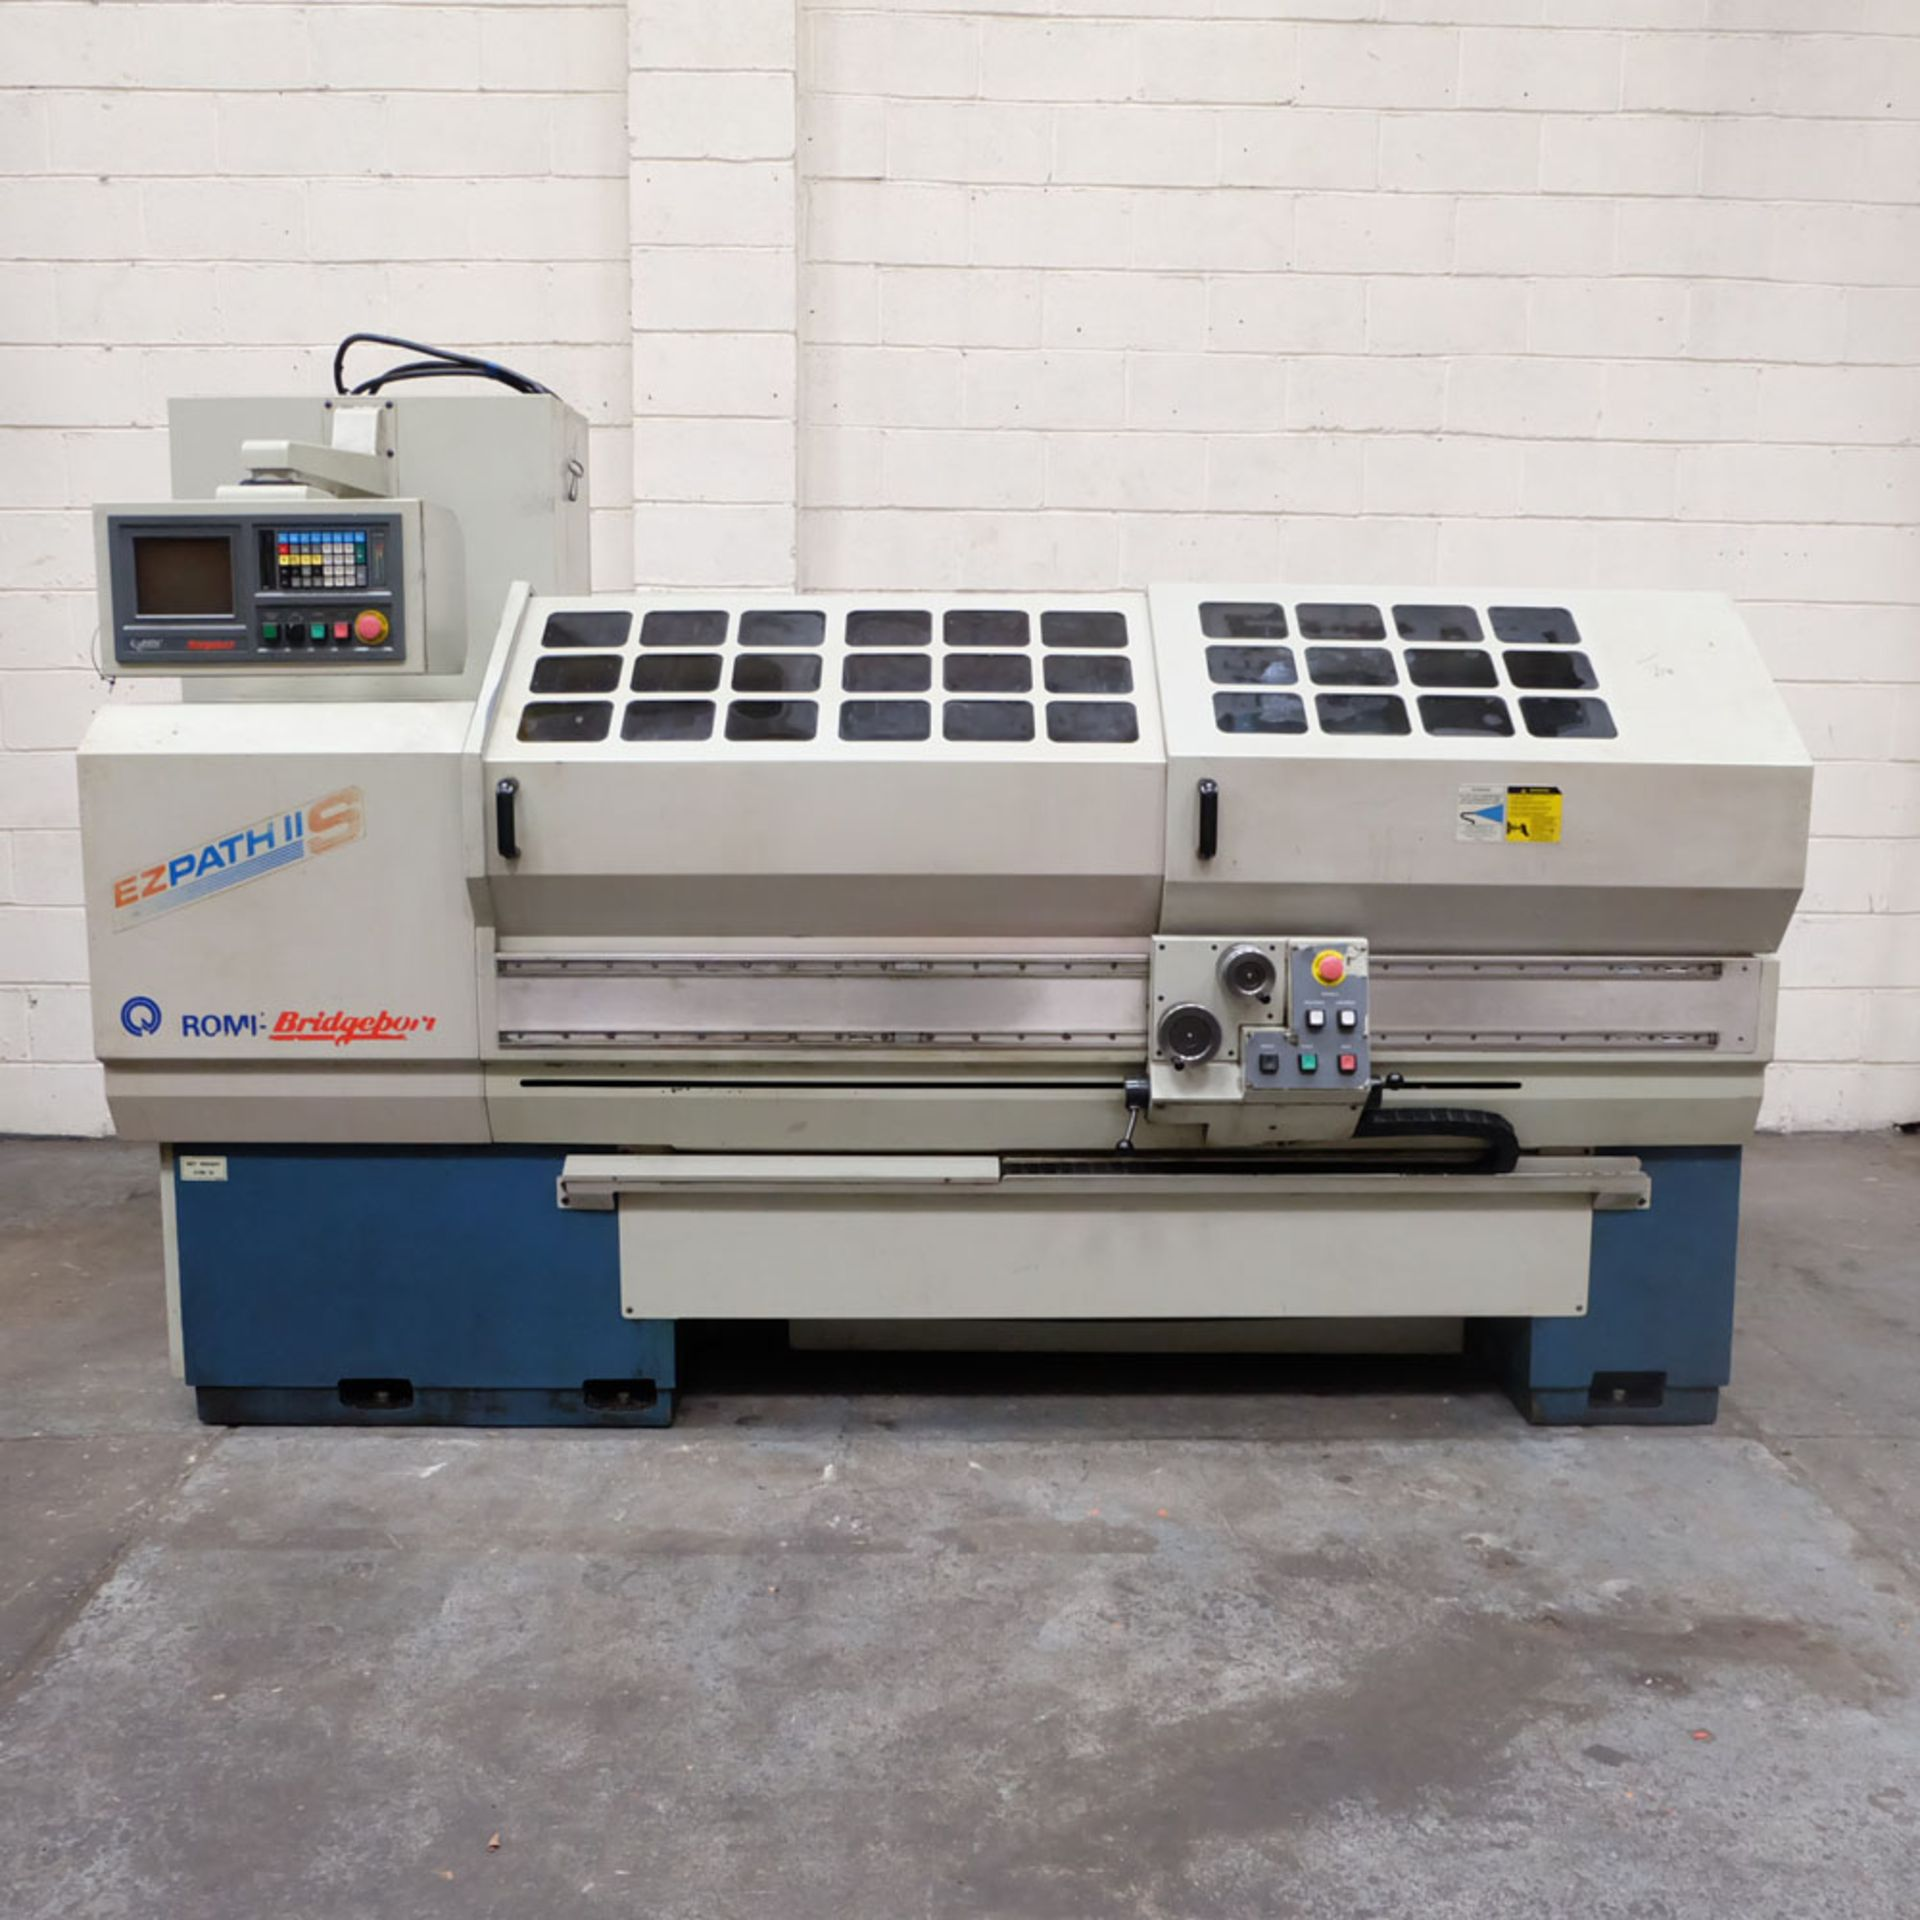 "Bridgeport Romi EZ Path IIS V3 CNC Centre Lathe. DX32R 2 Axis Control. Swing Over Bed: 20"". - Image 2 of 9"